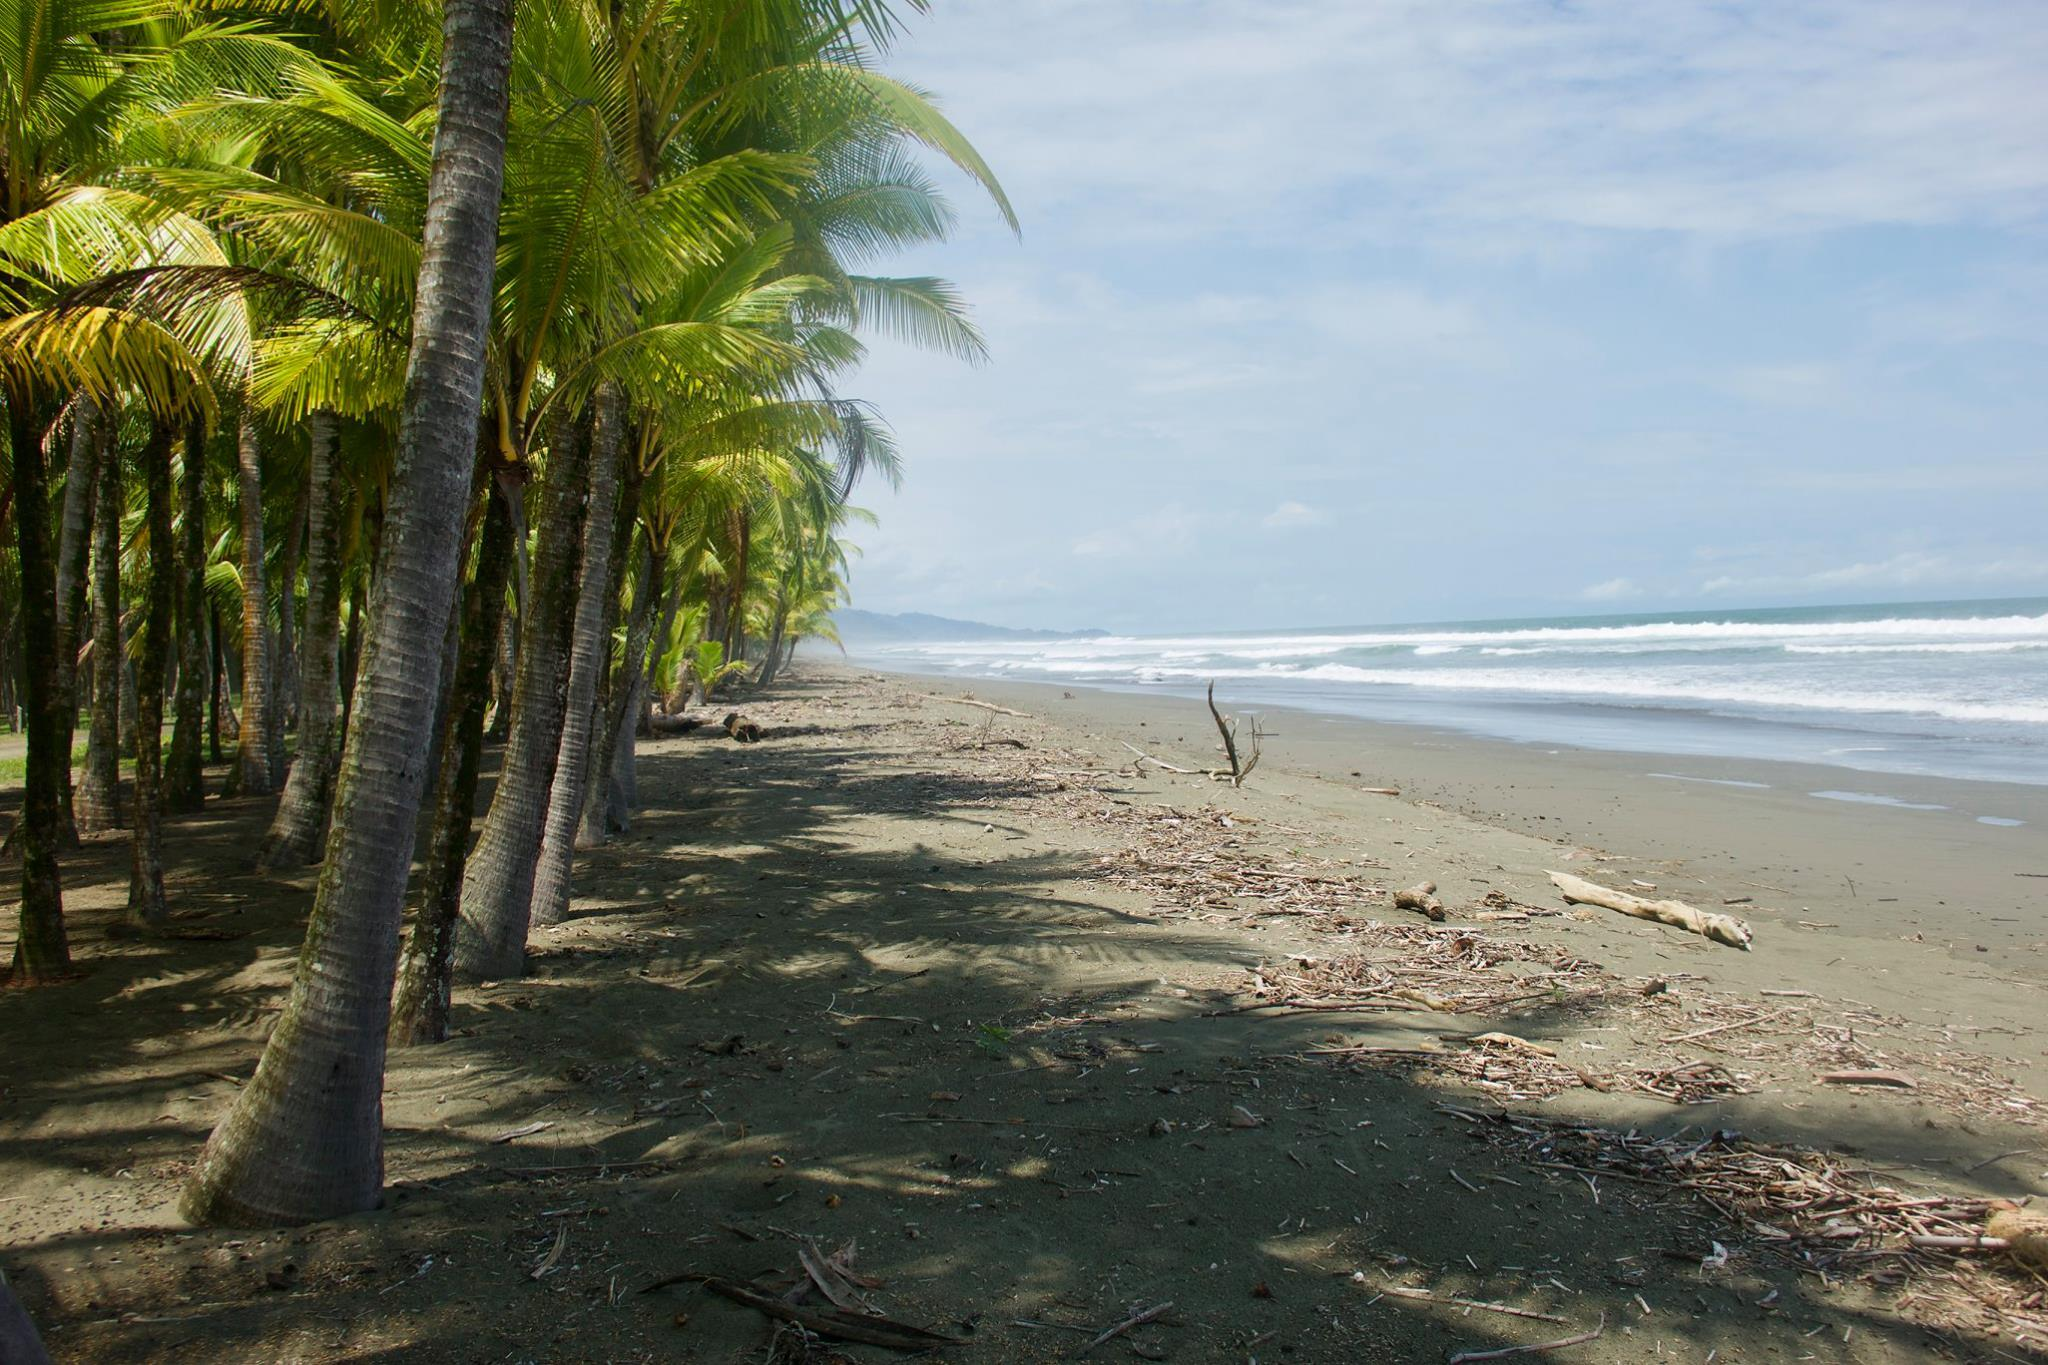 Picture of secluded beach near Quepos, Costa Rica